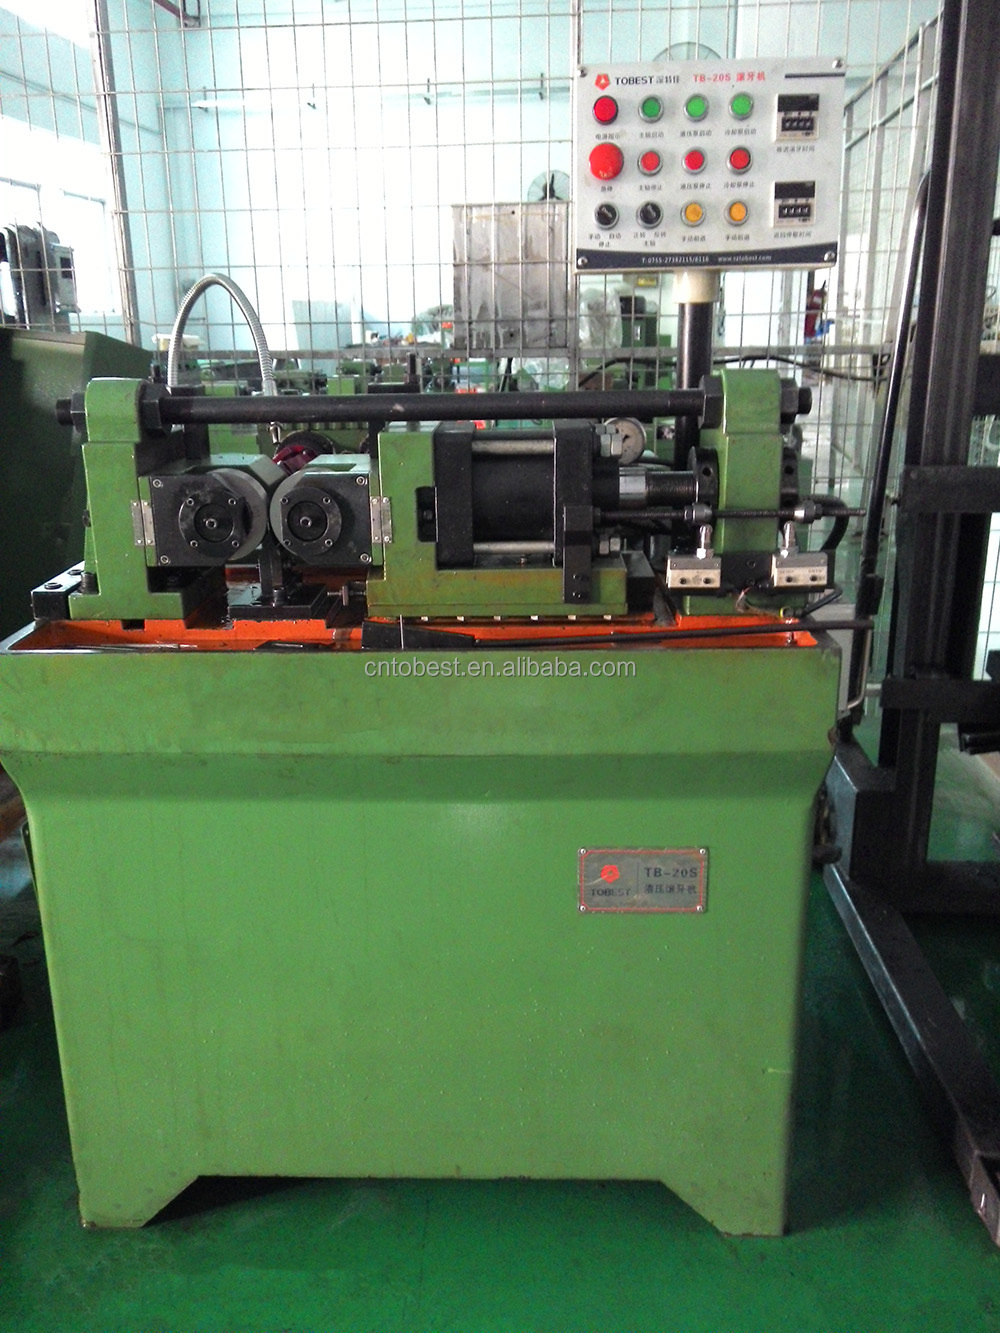 rebar threading machine04.jpg